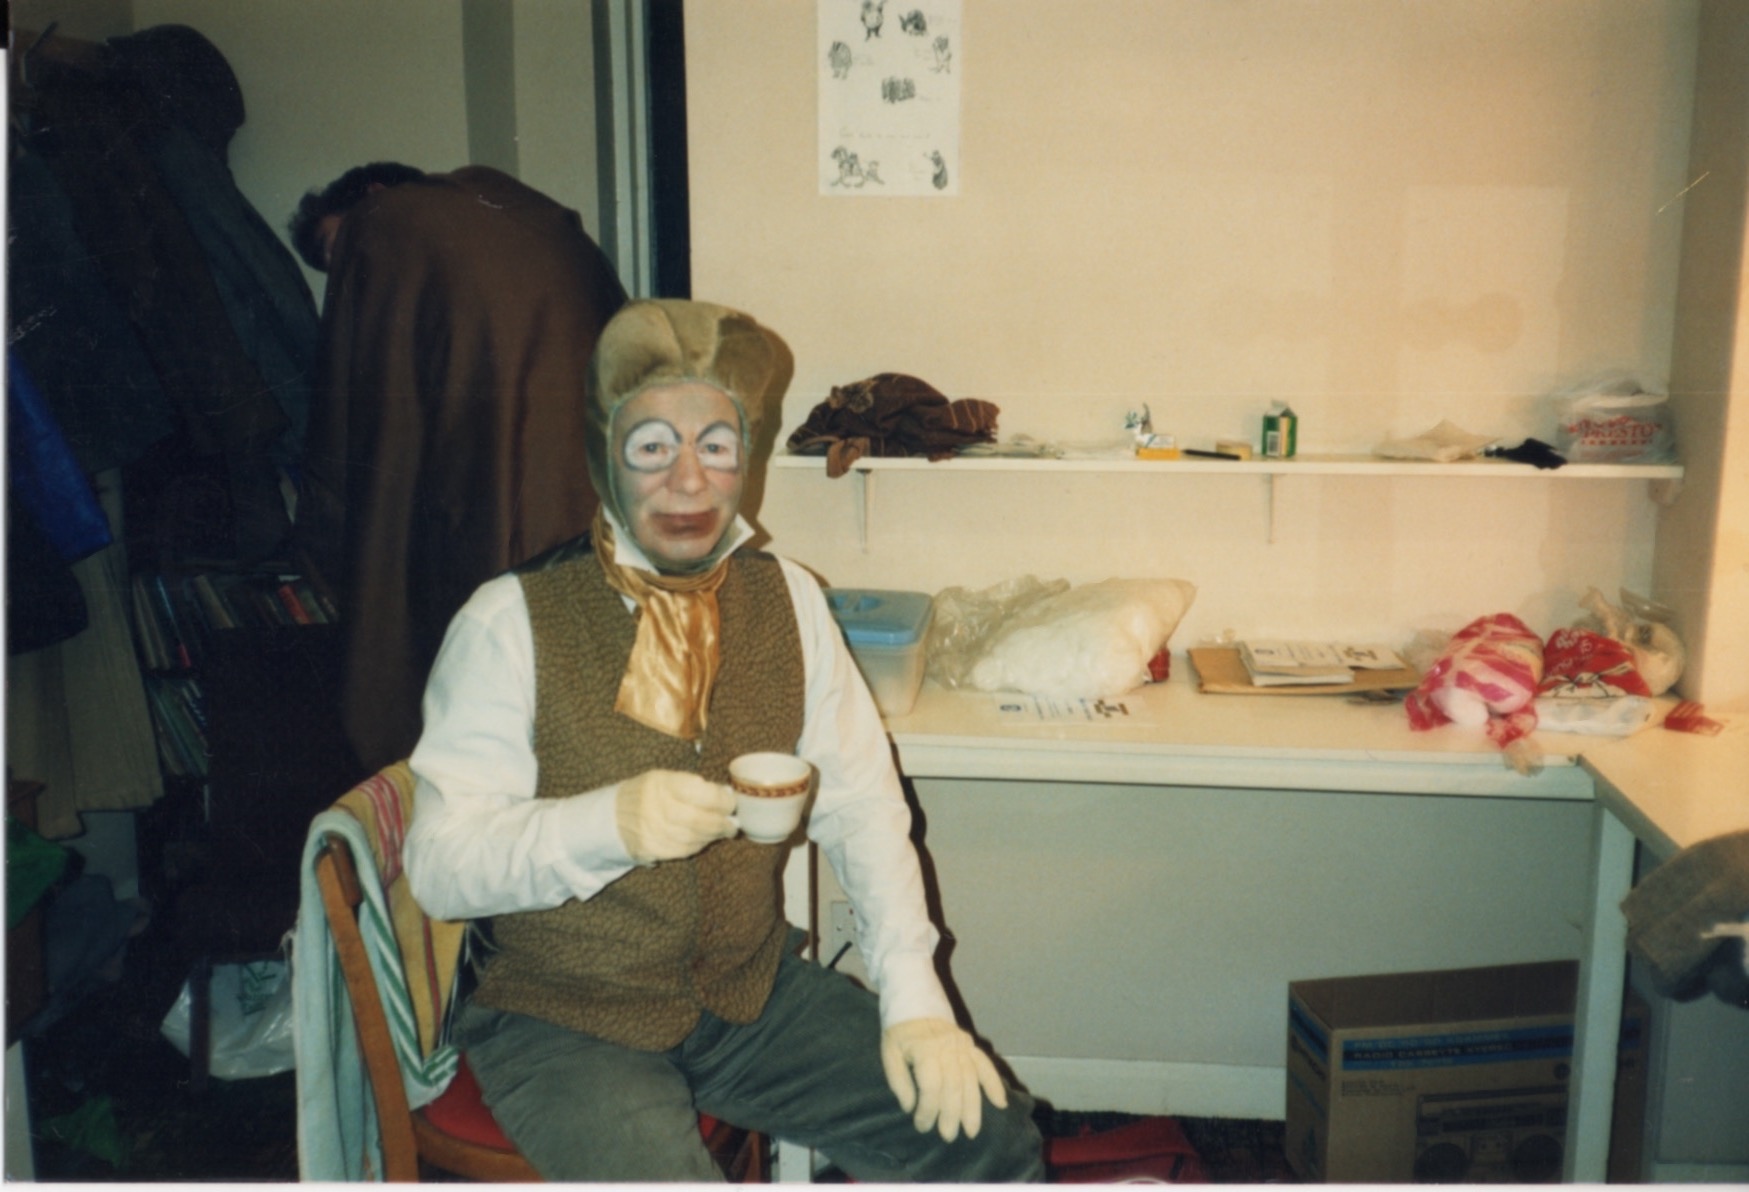 Toad played by John Skelton taking a well earned rest with a cup of tea!